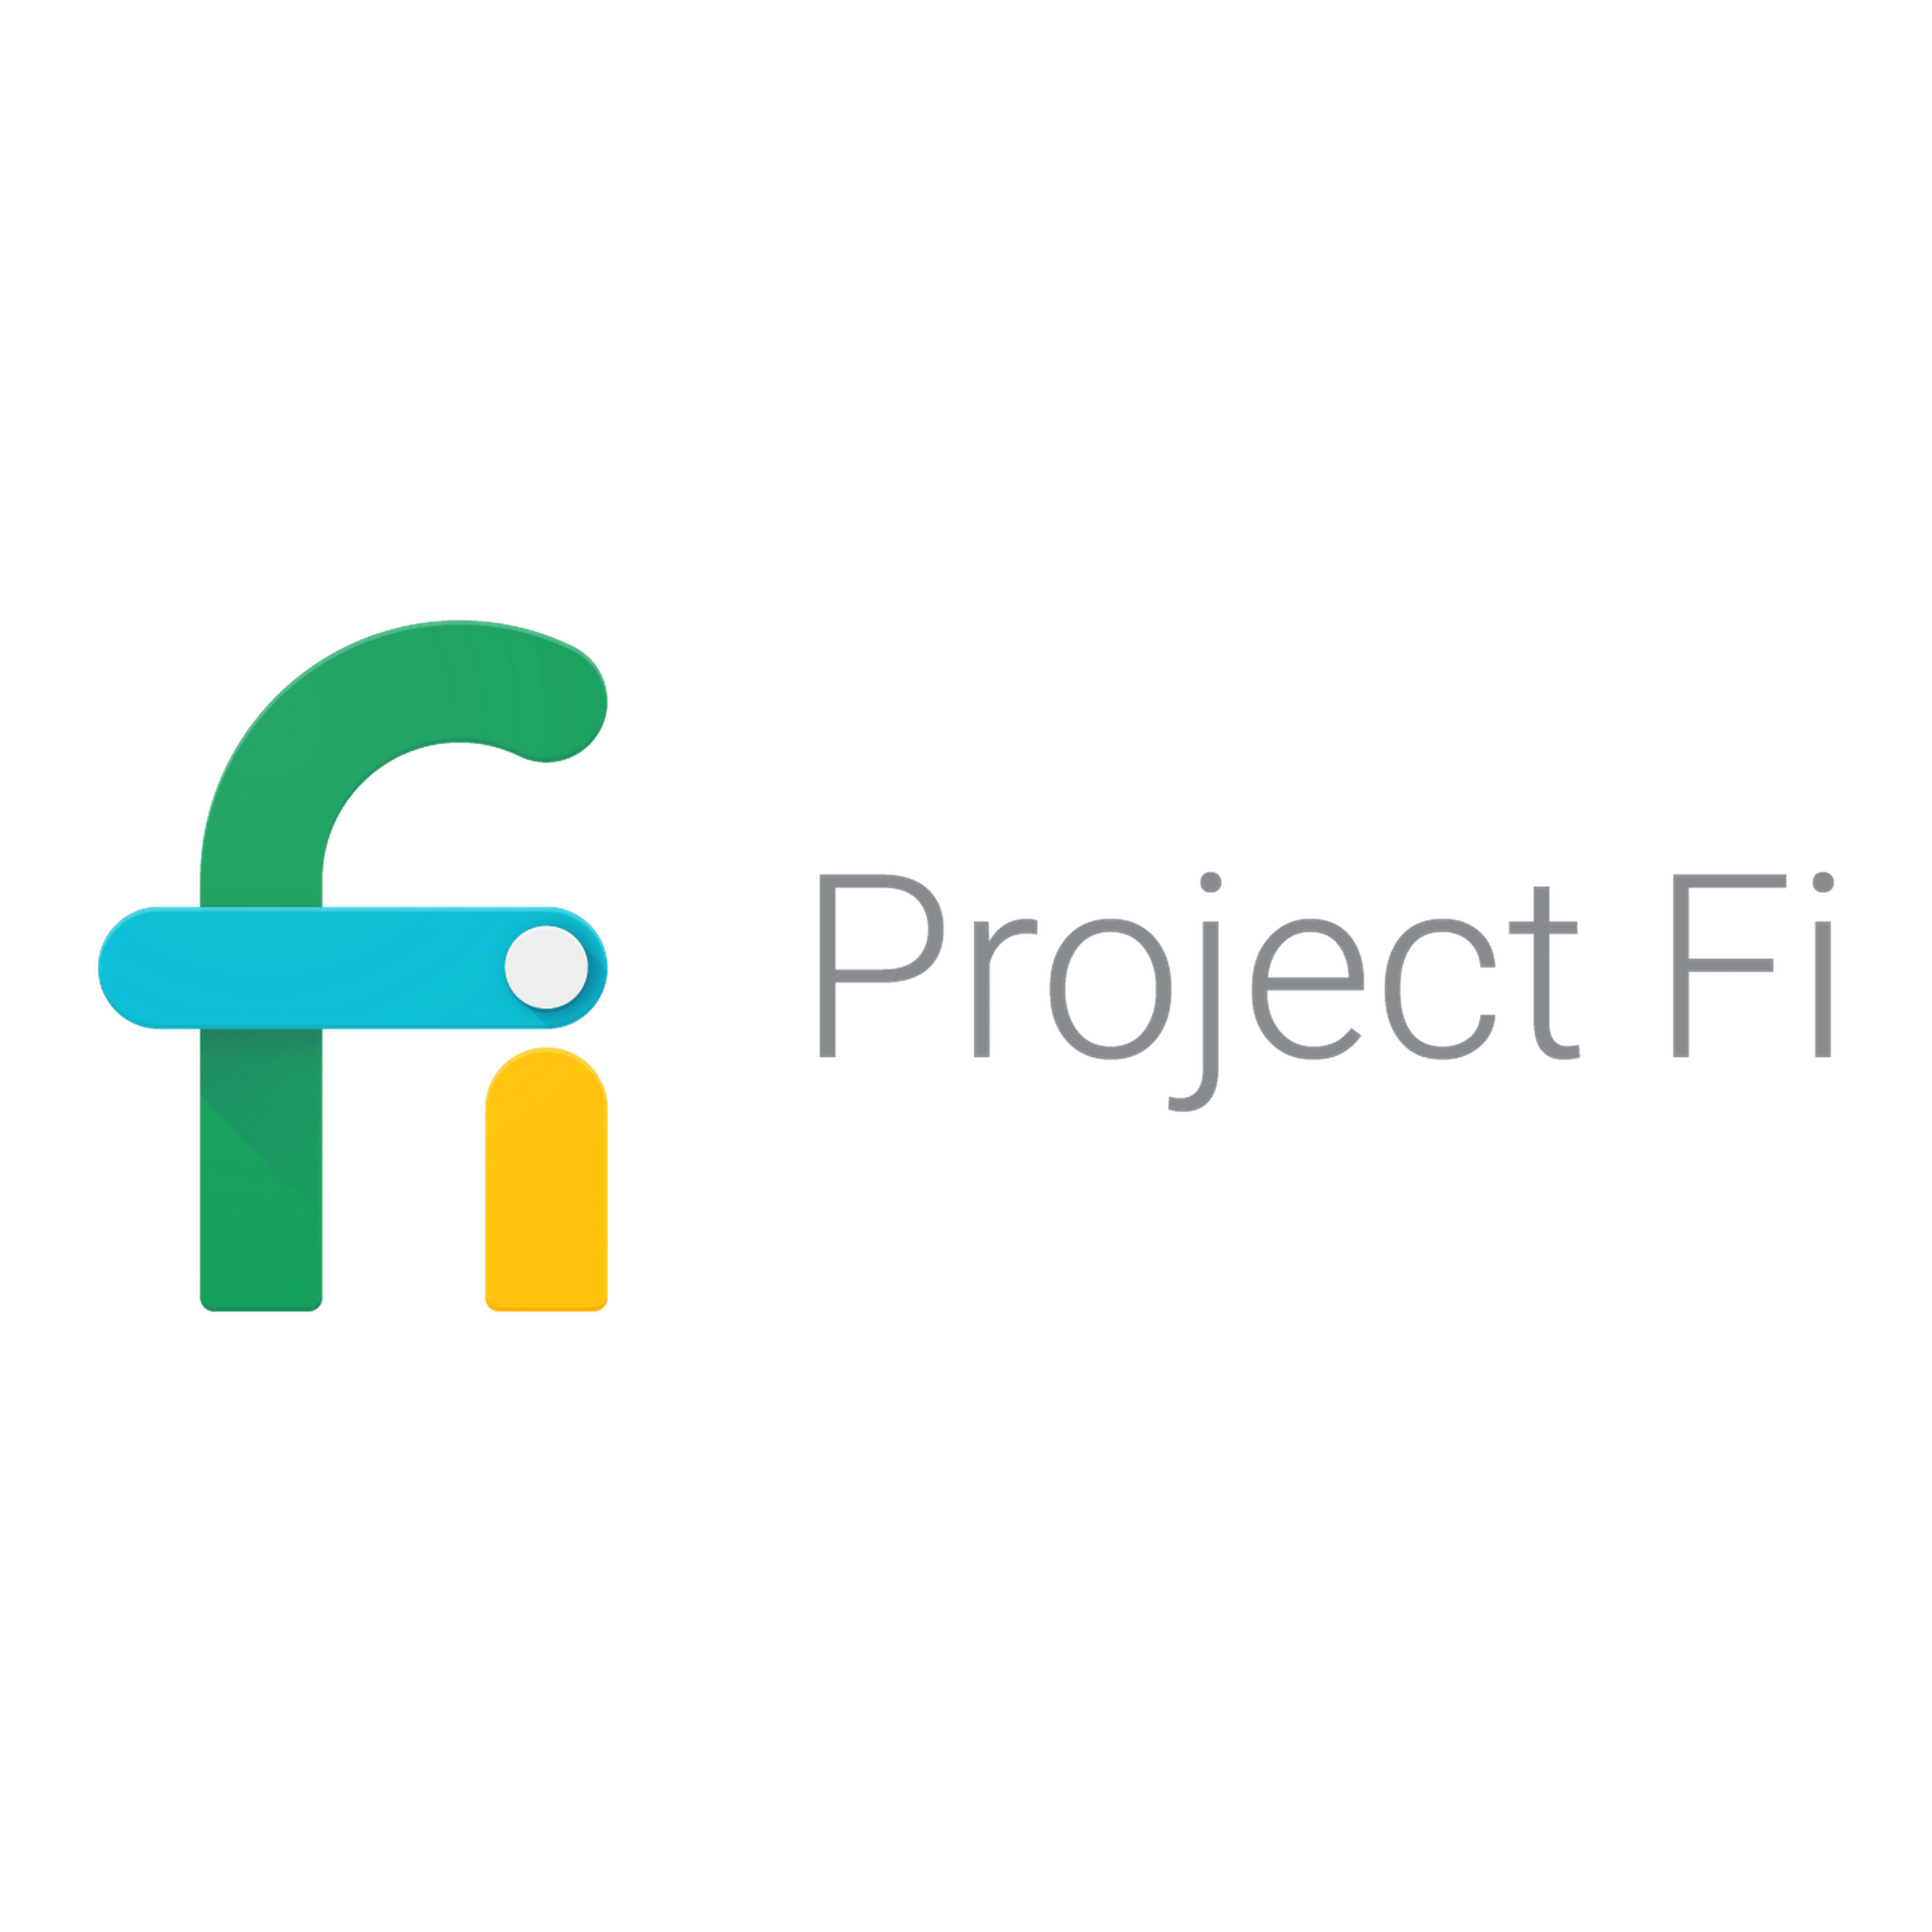 A Closer Look at Google Fi's Offerings